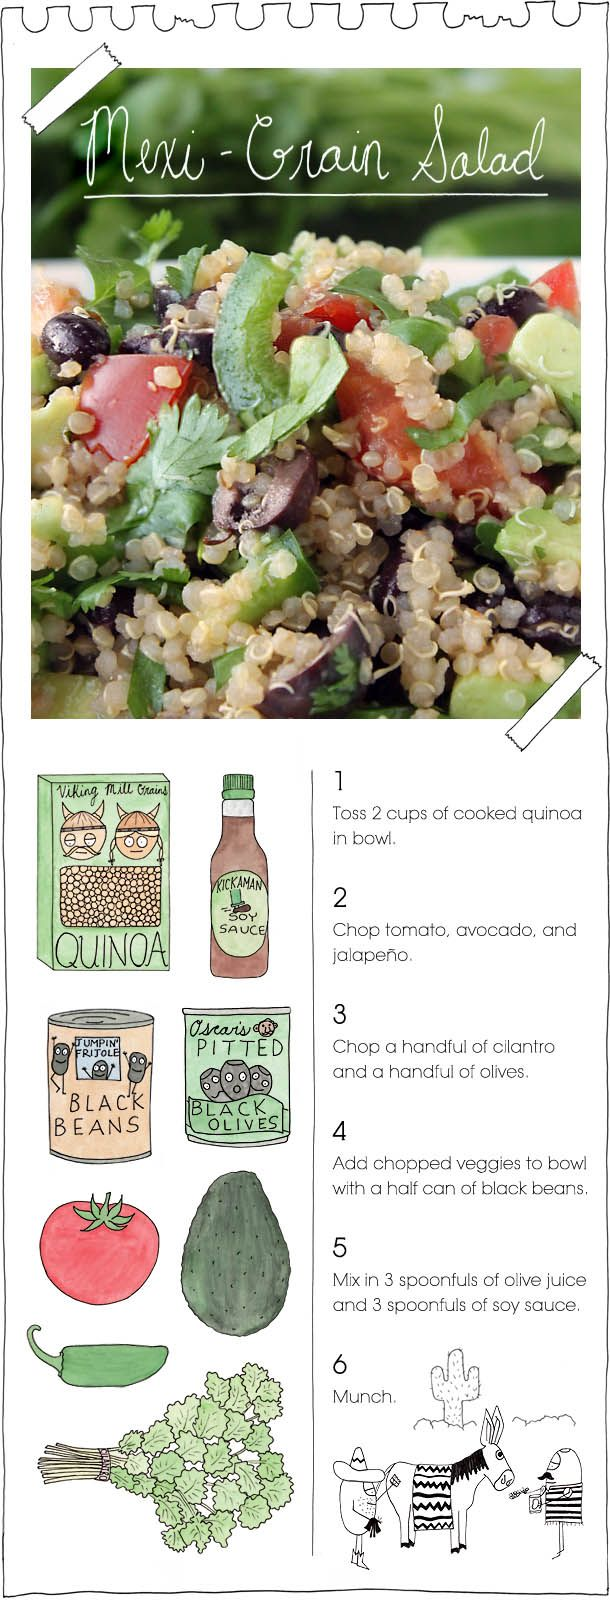 The Vegan Stoner's Mexi-Grain Salad: 2 cups quinoa with tomato, avocado, jalapeno, cilantro, olives, 1/2 can black beans, 3 spoons olive juice, 3 spoons soy sauce.